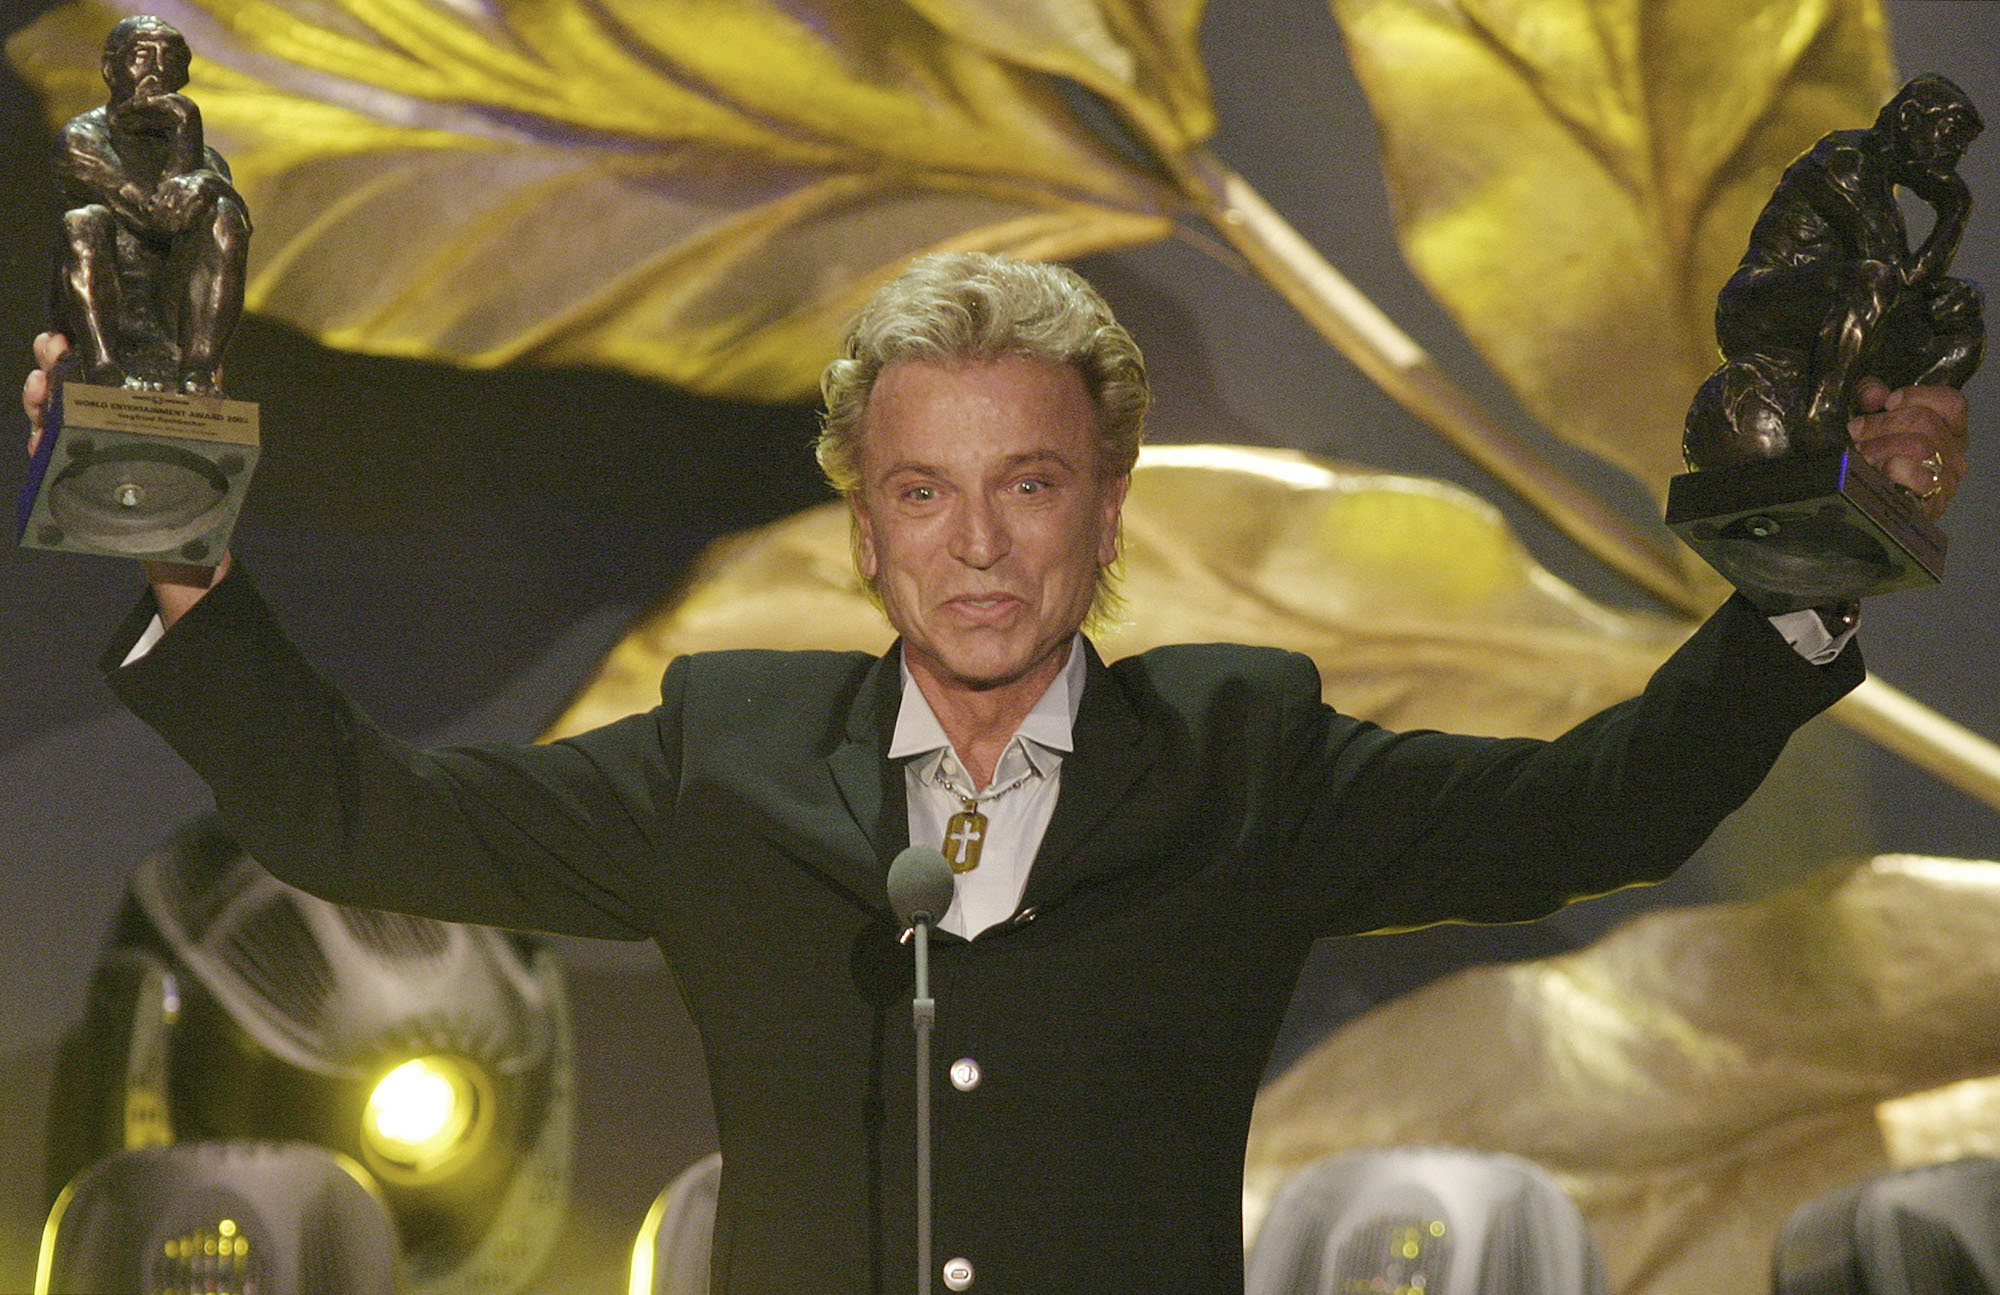 German illusionist Siegfried Fischbacher of the duo  Siegfried & Roy  holds their trophies after receiving the World Entertainment Award at the World Award 2003 ceremony in Hamburg, northern Germany, on Oct.22, 2003.